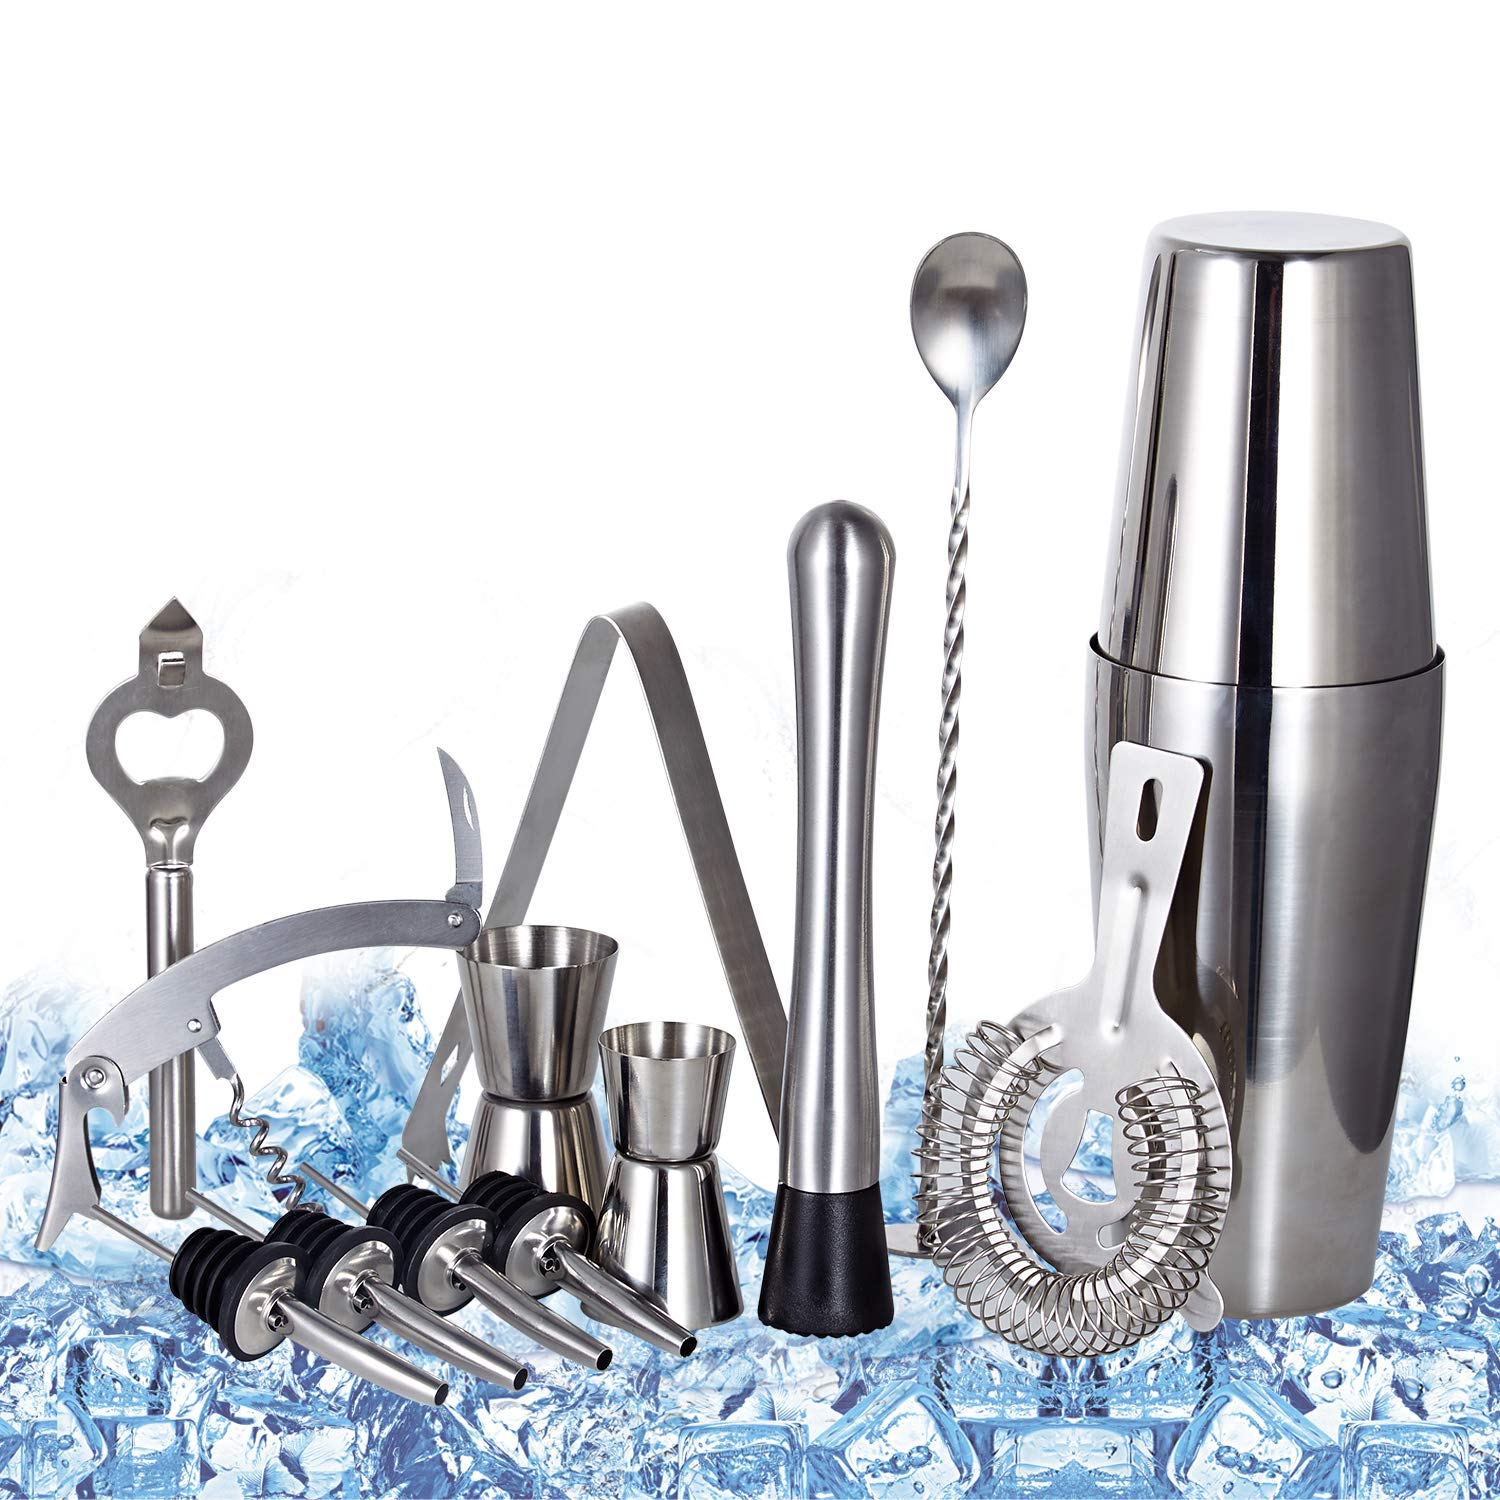 Cocktail Shaker Set Professional Bartender Kit - Premium Brushed Stainless Steel Martini Mixer, Spoon, pourers, Ice Tong, Strainer, Jigger, Muddler, Bottle Opener, Cork Screw for home Barware Tools by TOP BEAUTY (Image #1)